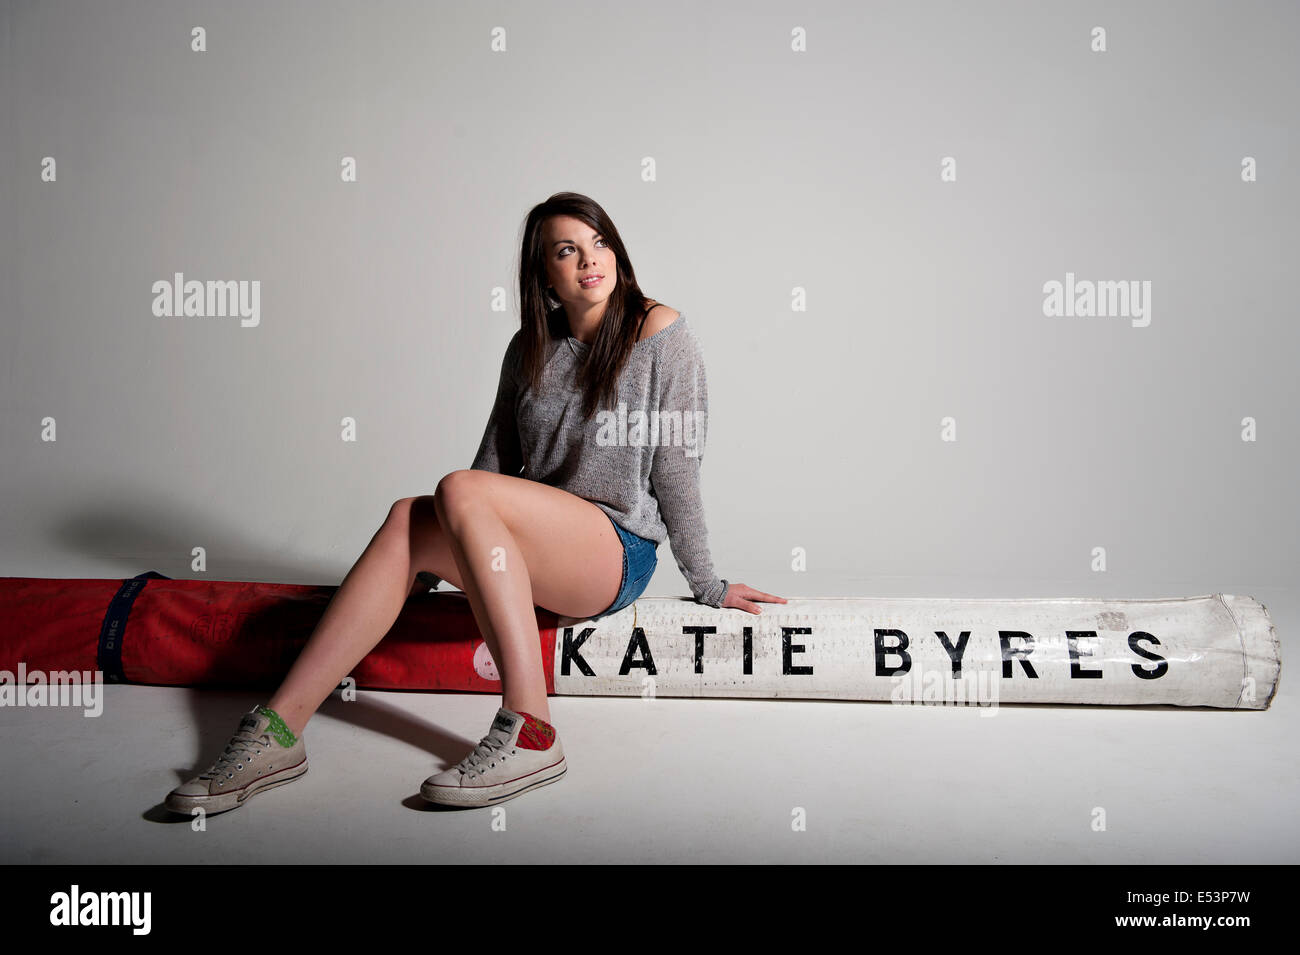 Katie Byres pole vaulter for England and the UK, studio portrait - Stock Image